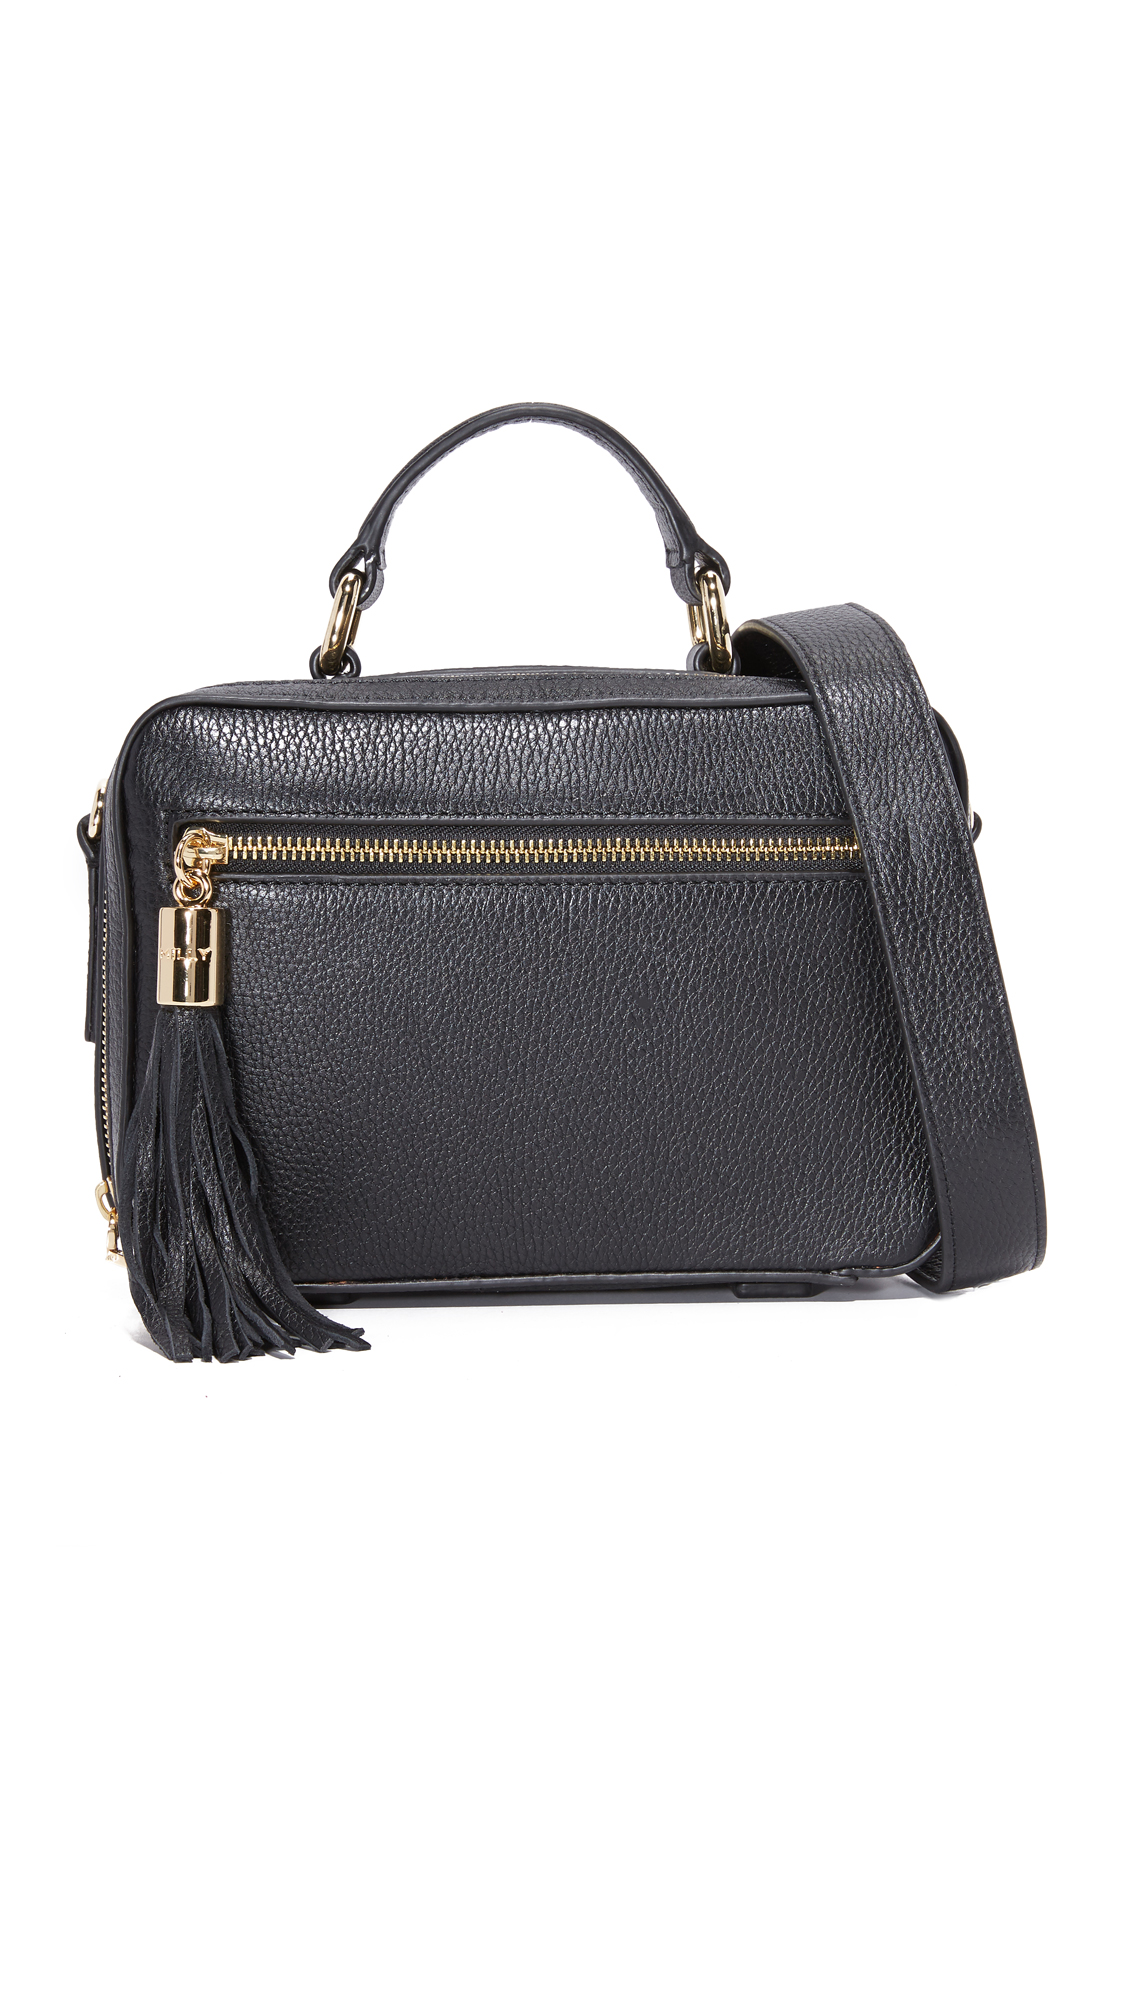 milly female milly small astor satchel bag black